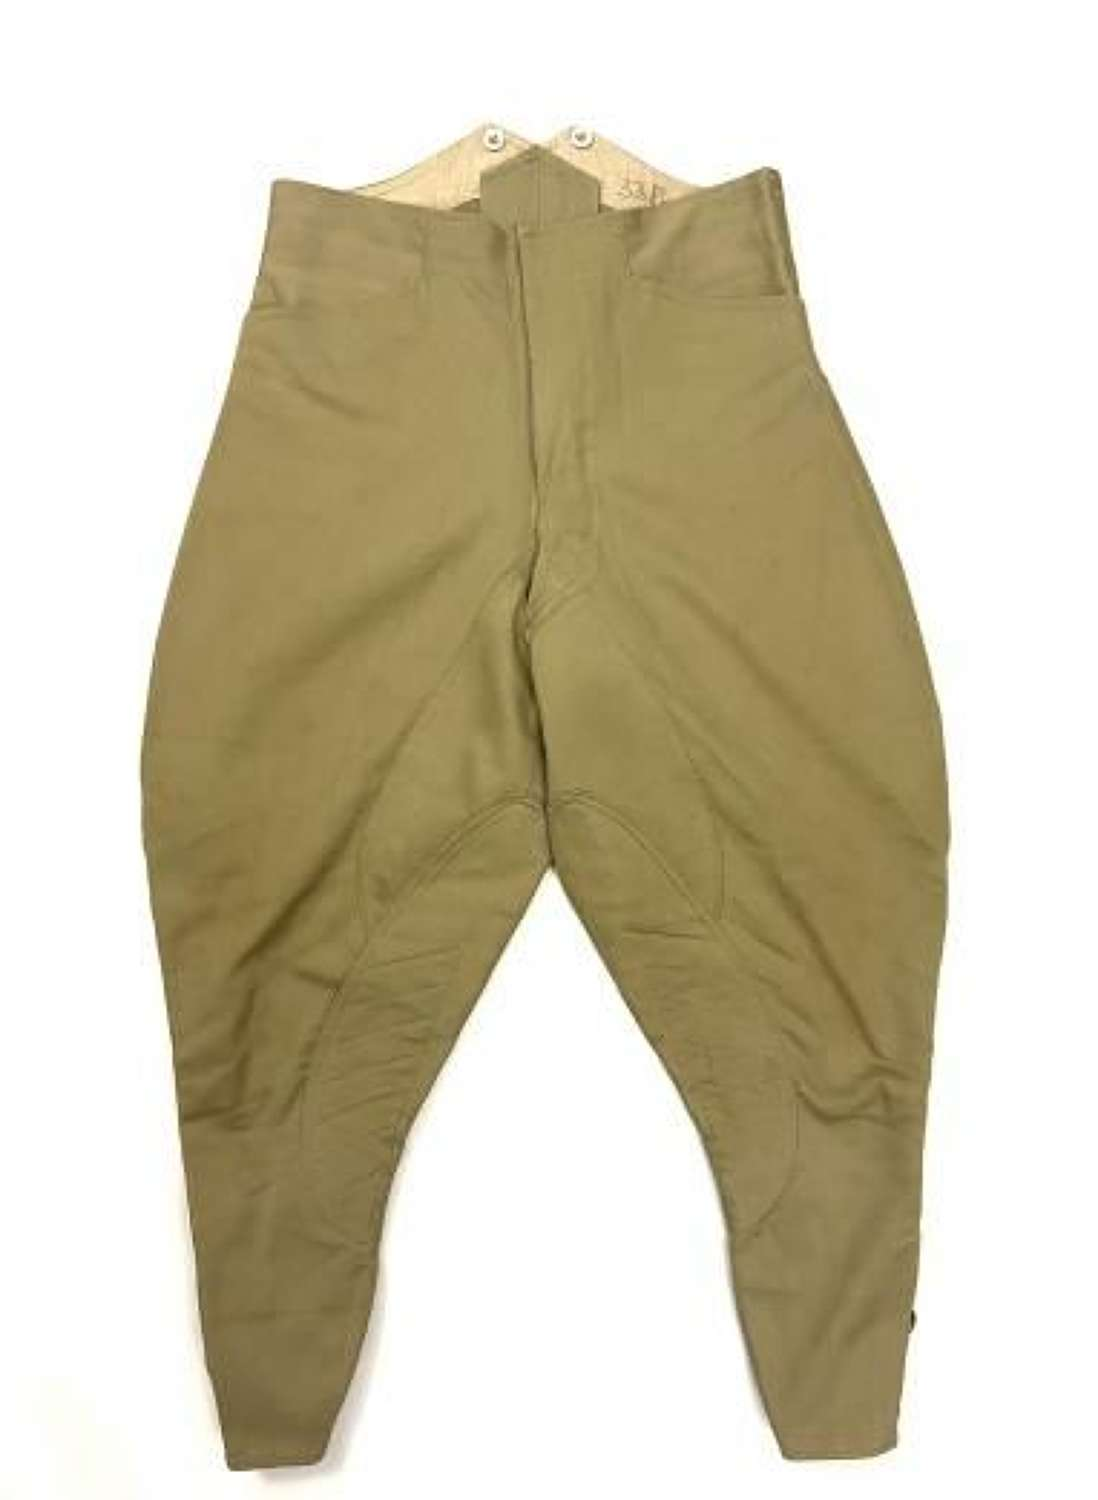 Original 1939 Dated Indian Made Khaki Drill Mounted Breeches